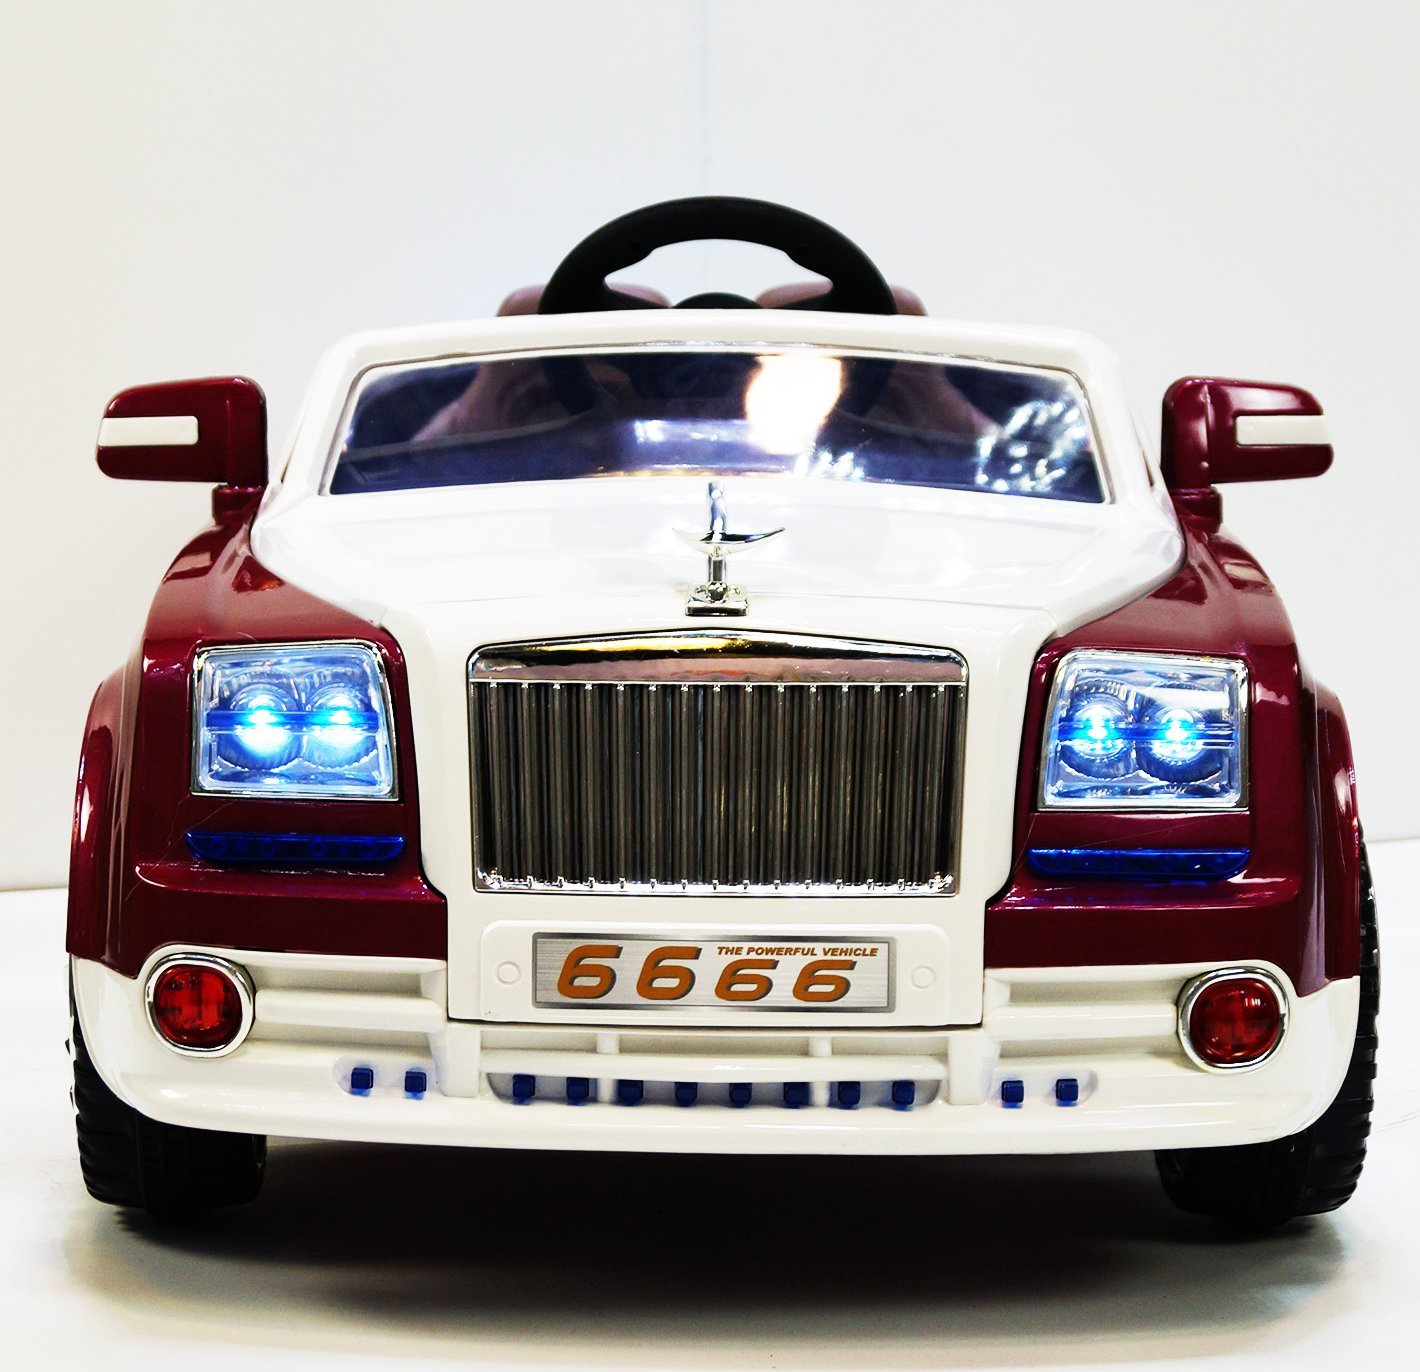 Ride on car ROLLS ROYCE style. Electric car to ride. Mp3. 2 motors, 2 batteries, total 12V. With remote control for kids from 2 to 7 years old. Two speeds.